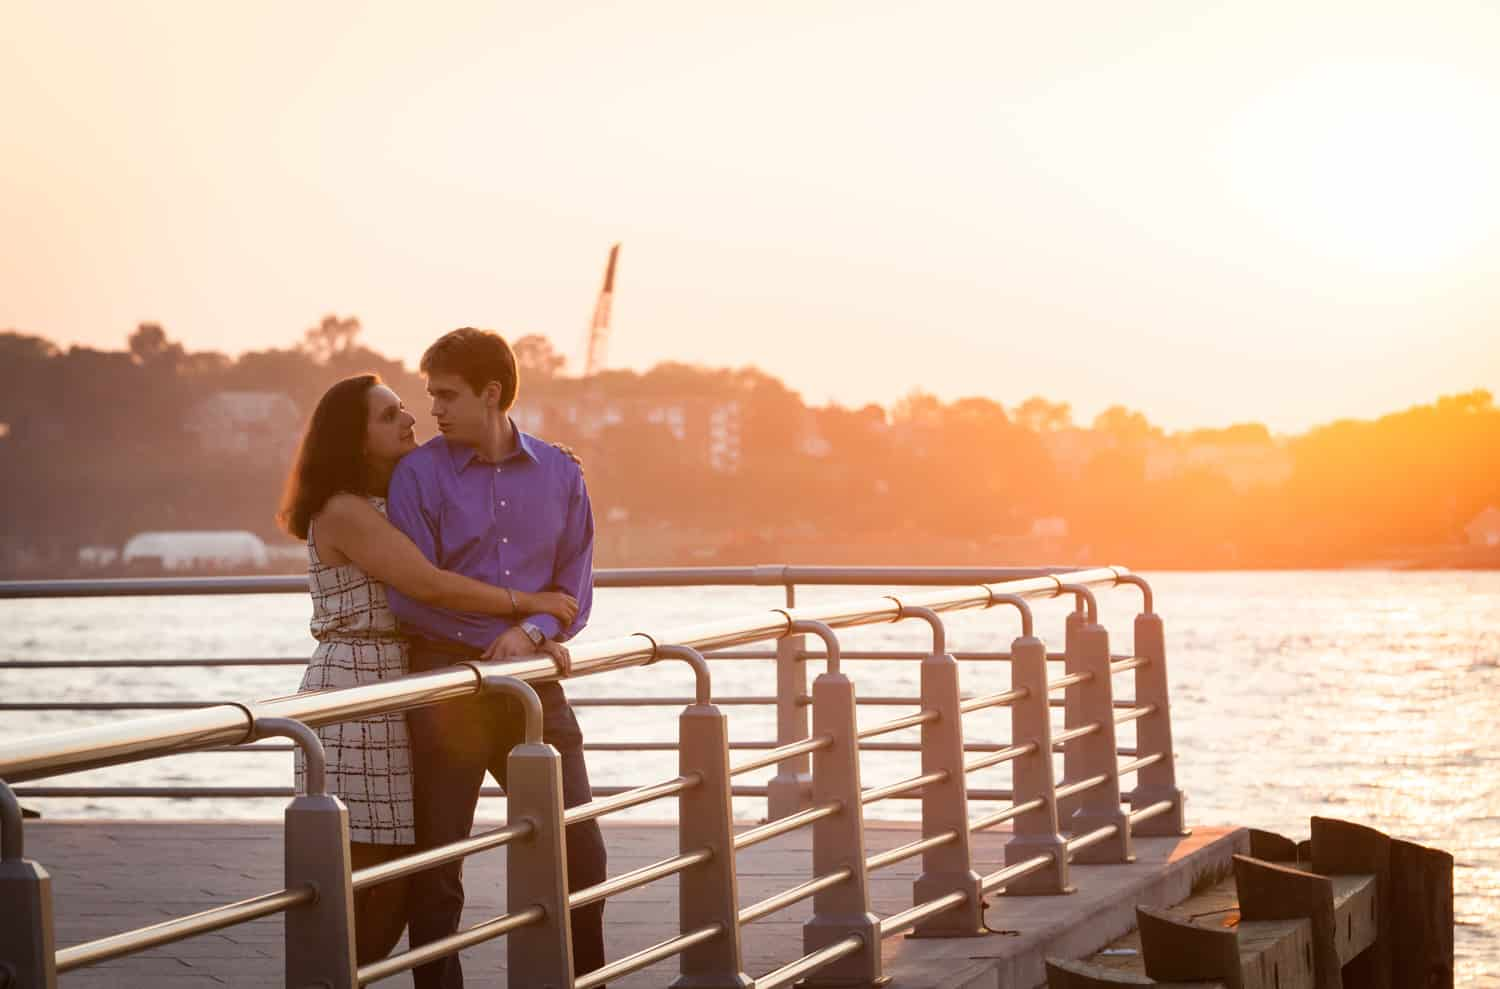 Couple on pier at sunset with Hudson River waterfront in background